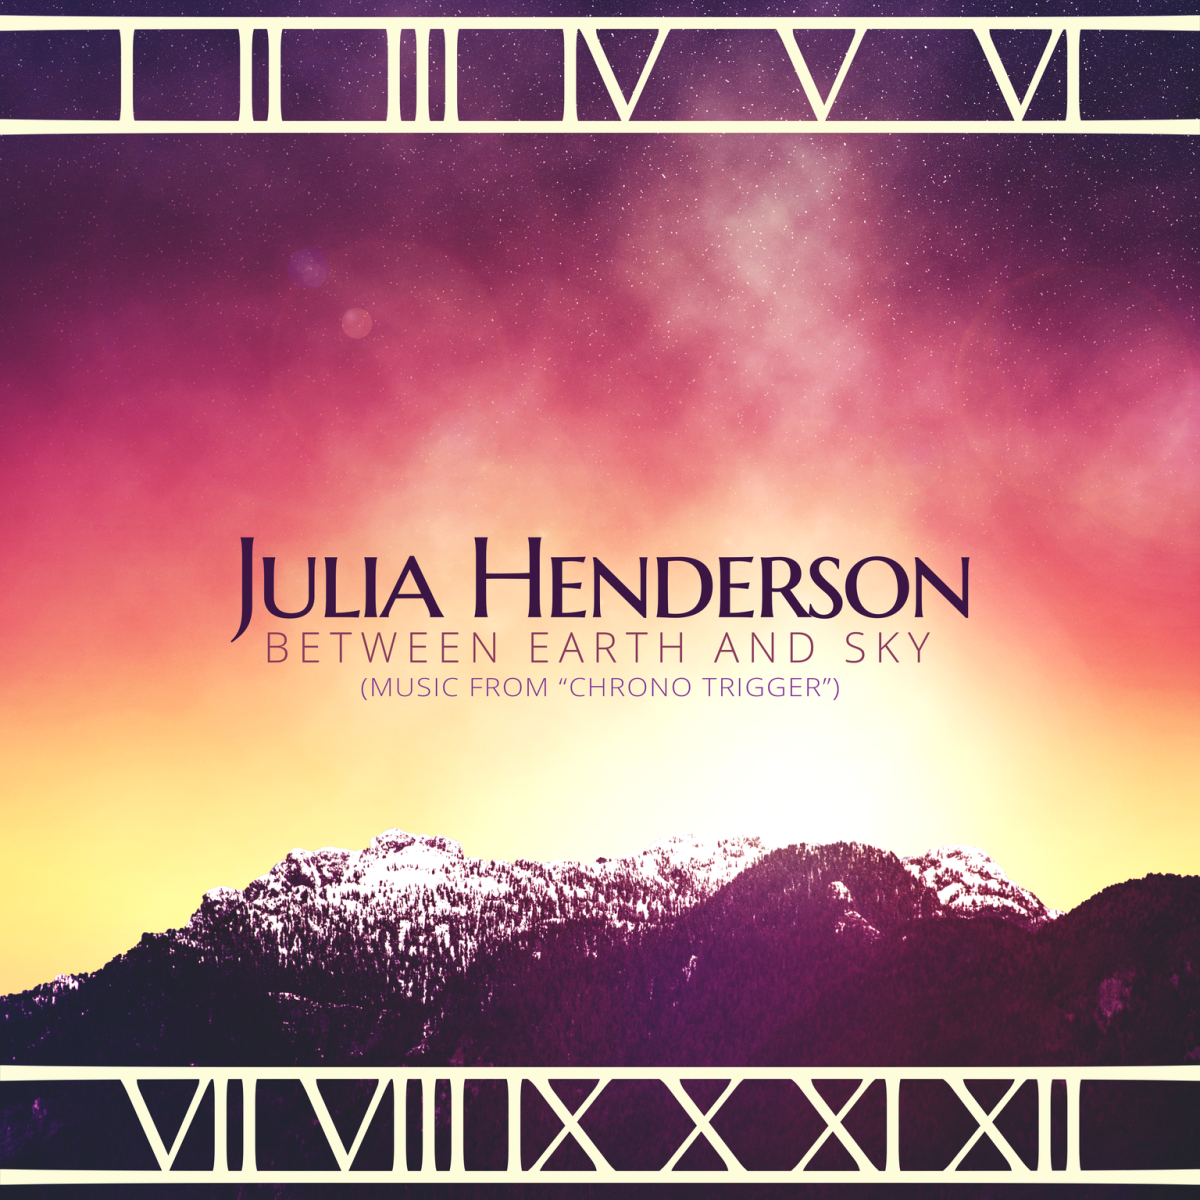 Between Earth and Sky: An Interview With Project Arranger Julia Henderson